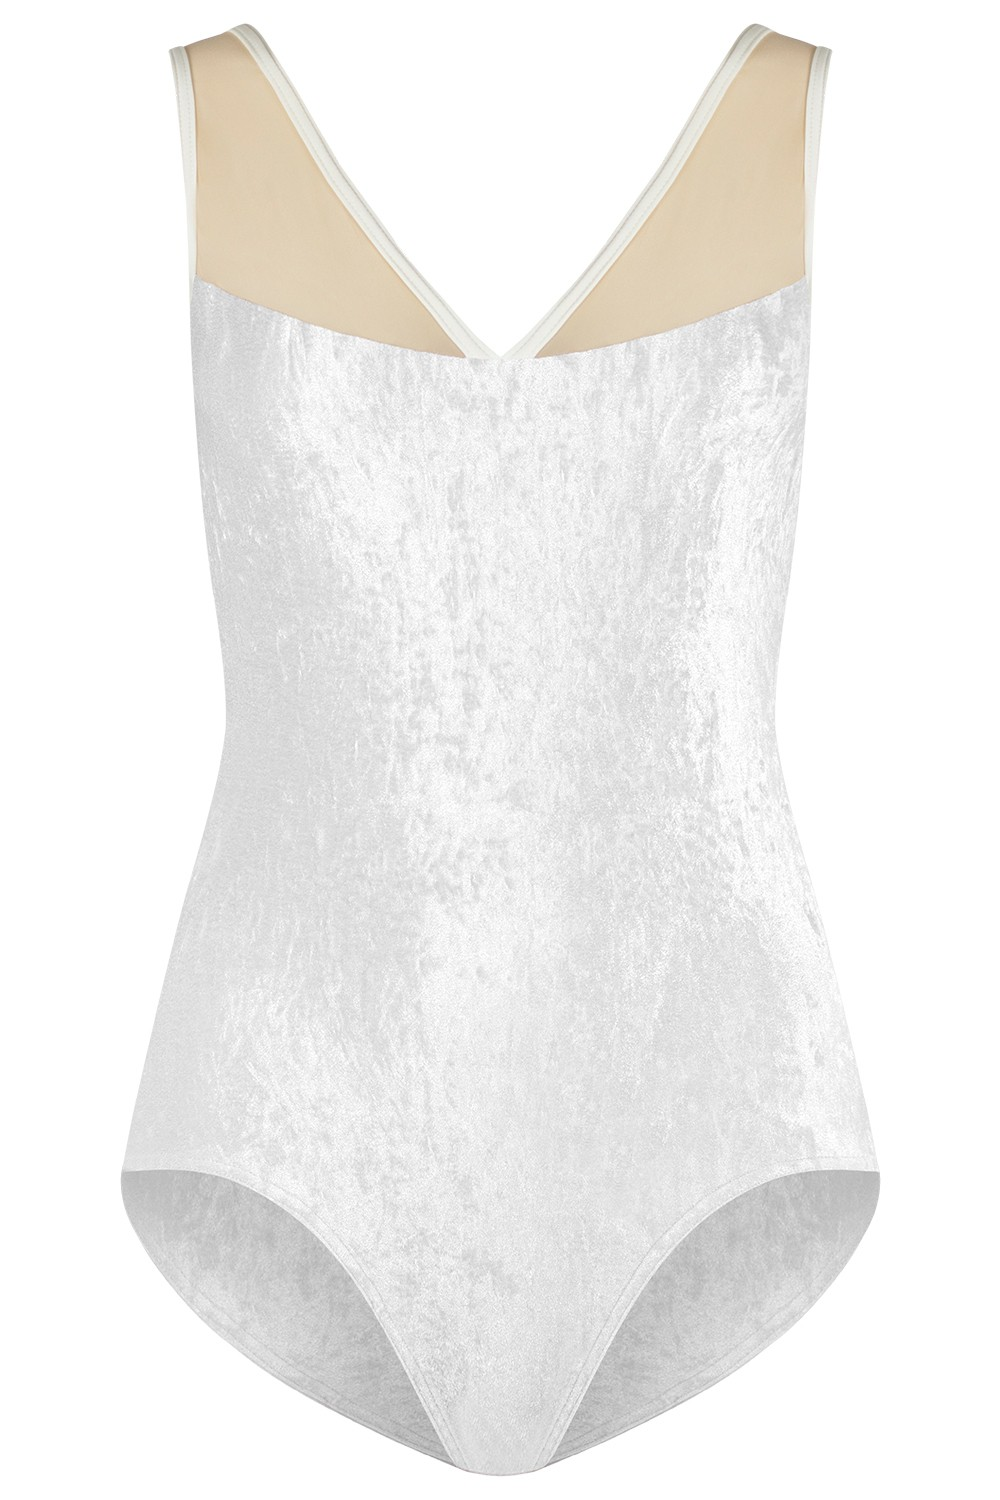 Masha V-White Mesh Brule N-Antique